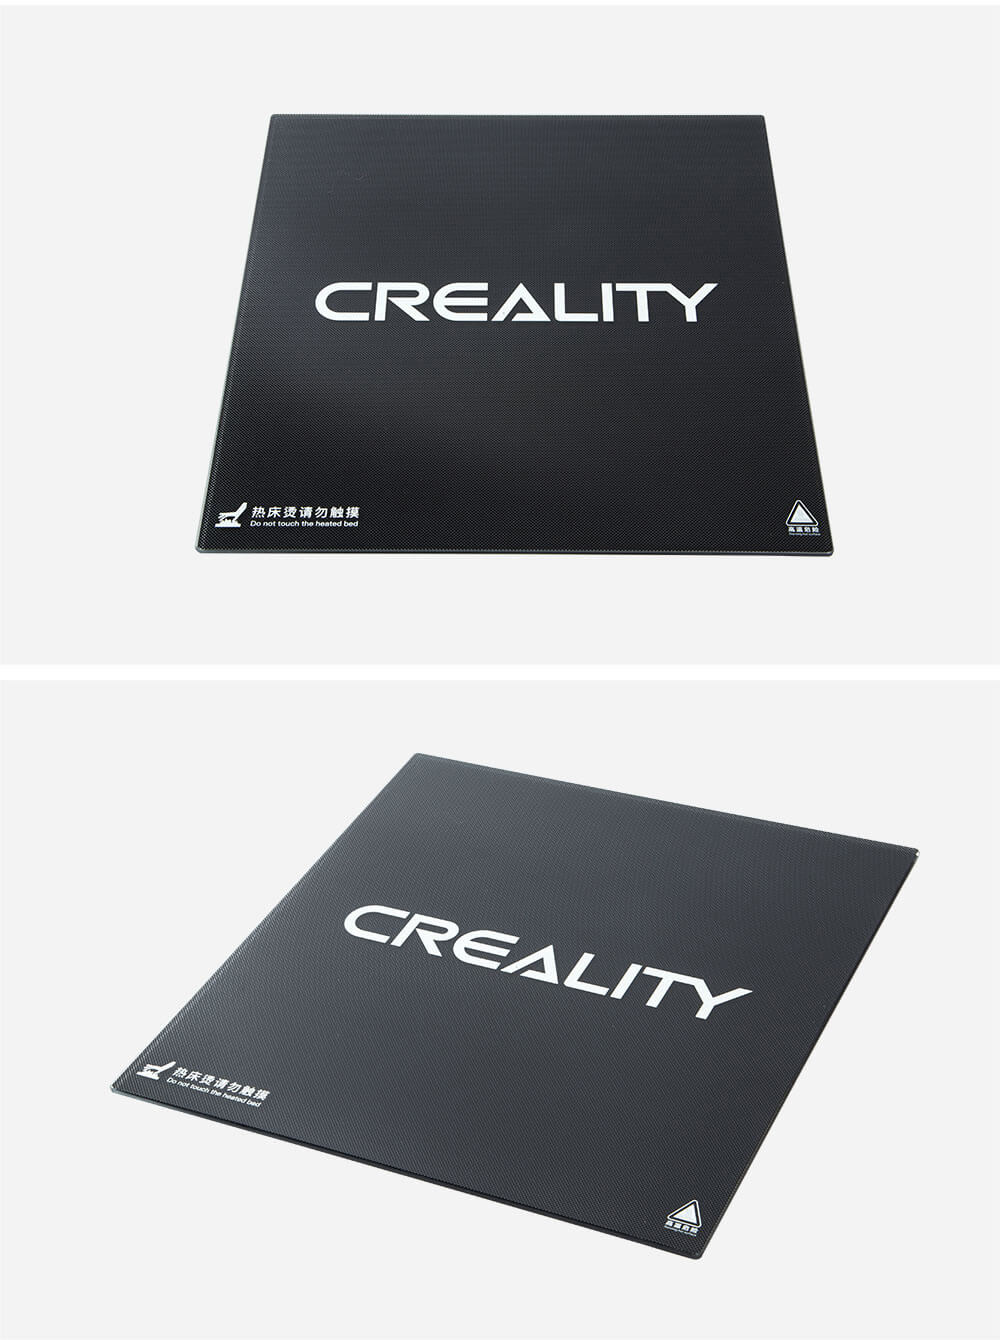 creality-3d-printer-Ender-3-Carbon-Silicon-Platform-Glass-12